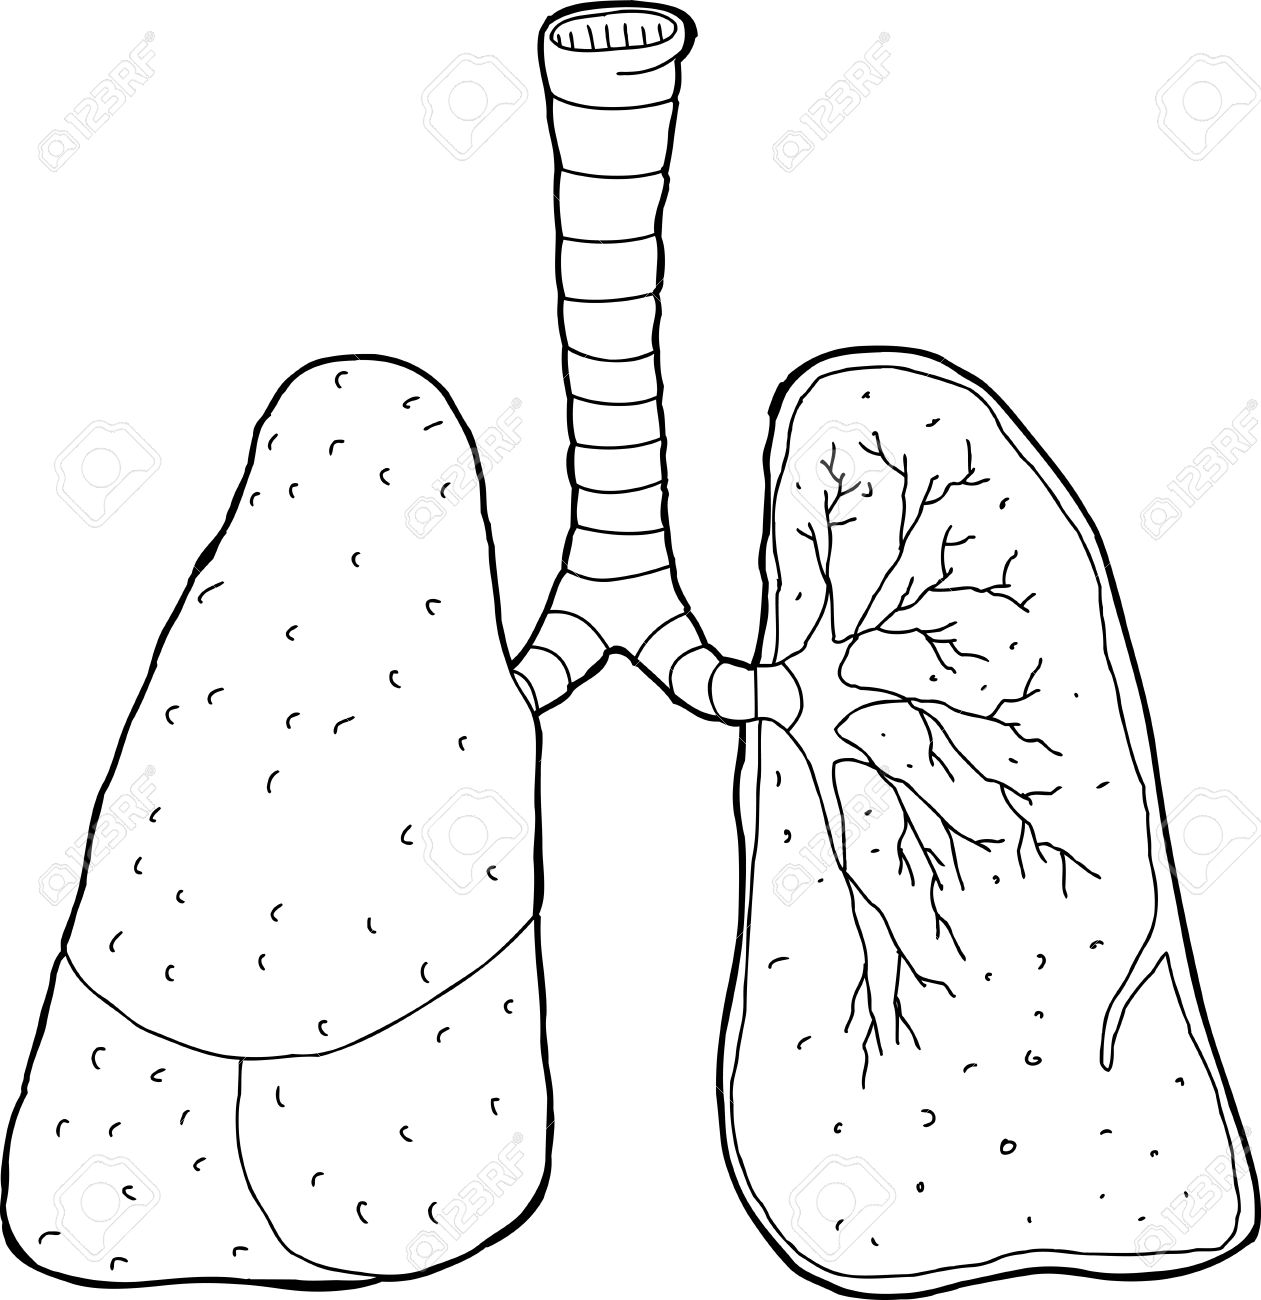 Cross section drawing of human lungs and trachea royalty free cross section drawing of human lungs and trachea ccuart Images